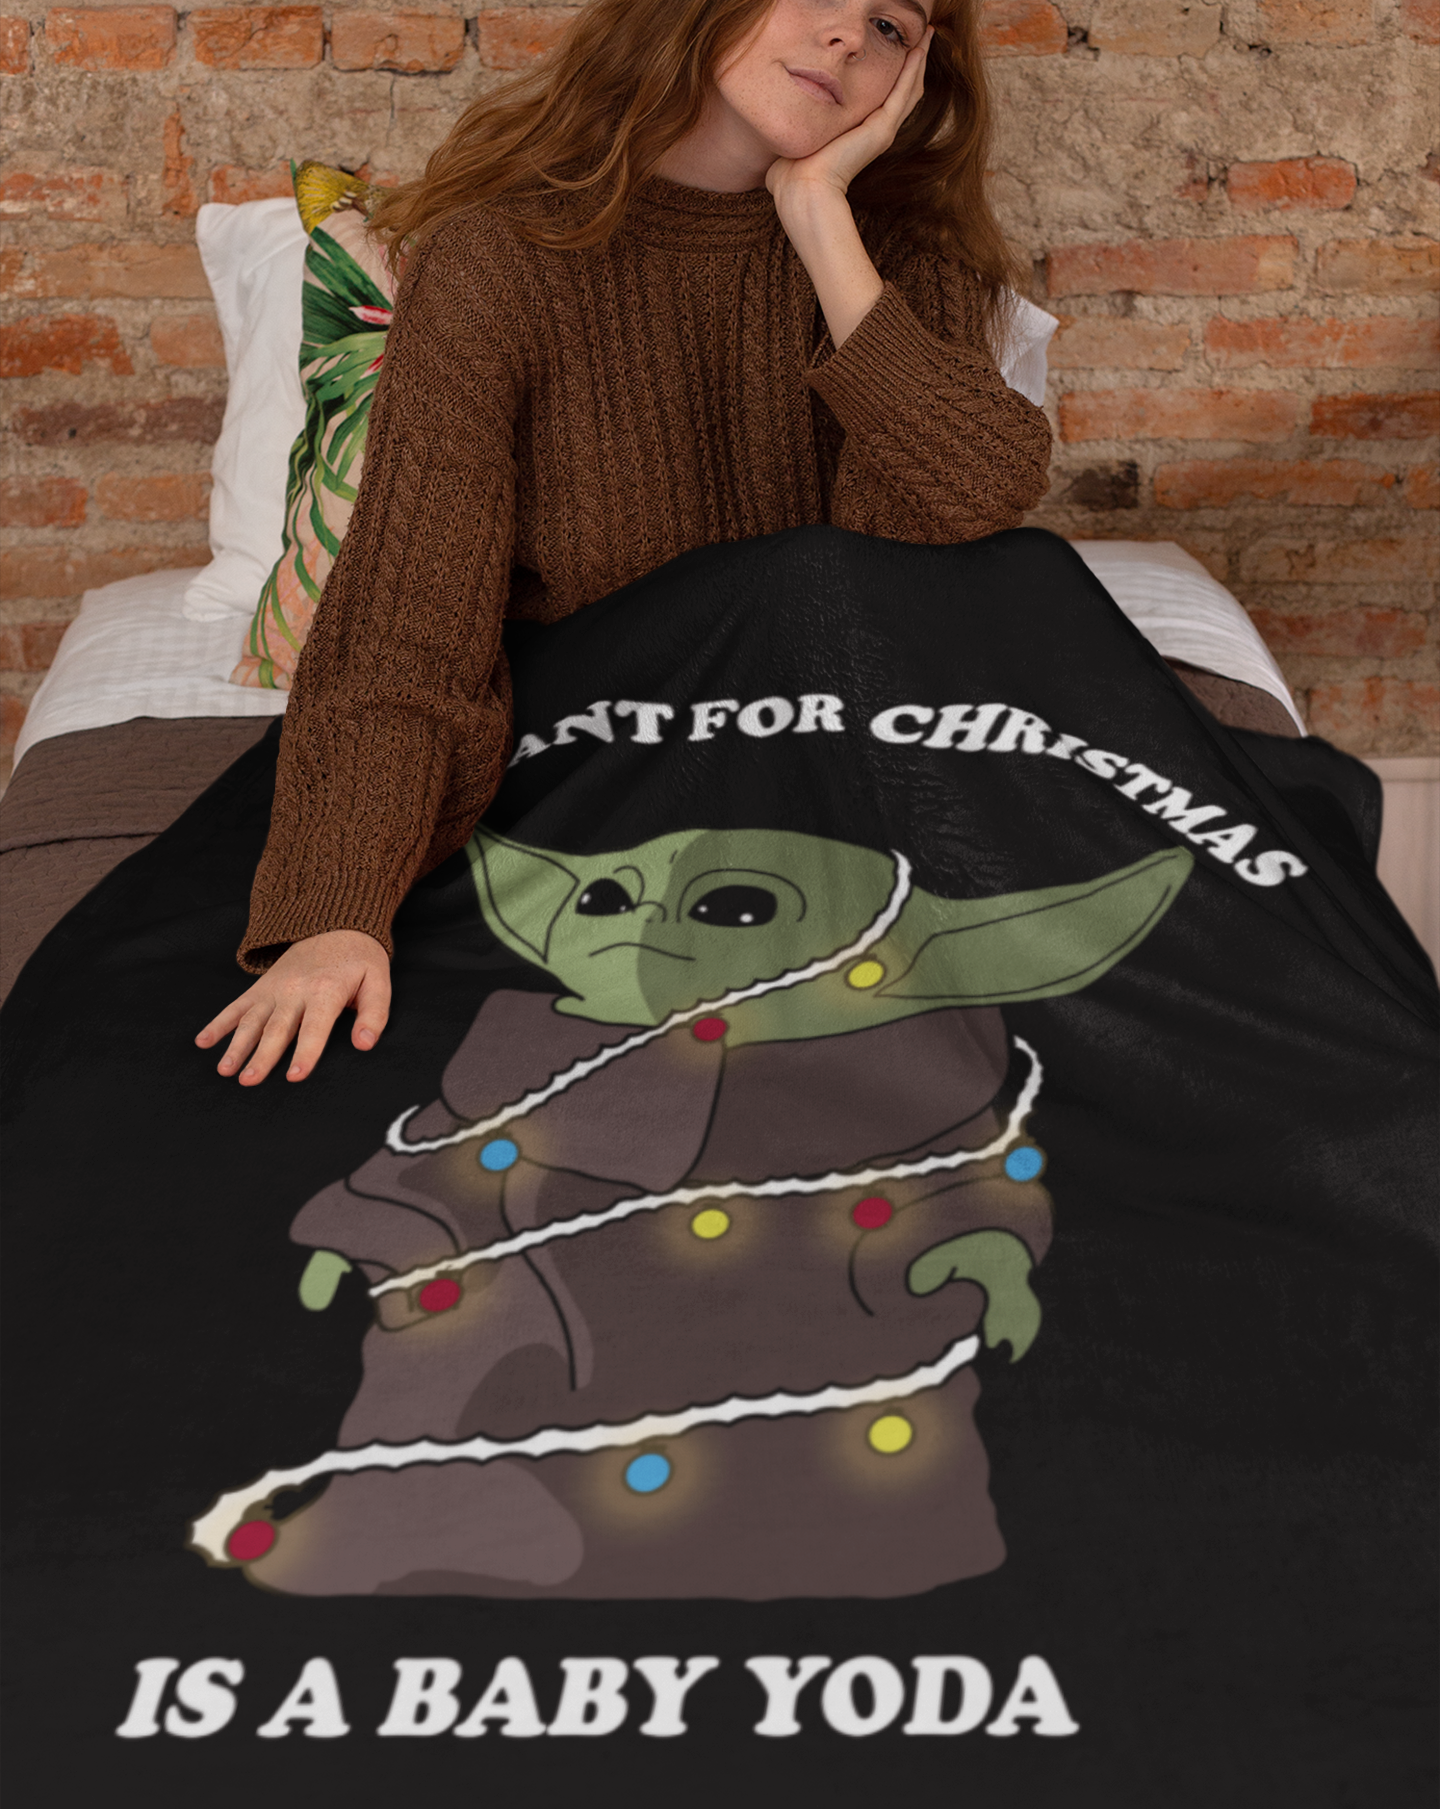 All I Want For Christmas Is A Baby Yoda Throw Blanket In 2020 Cozy Throw Blanket Yoda Christmas Throw Blanket